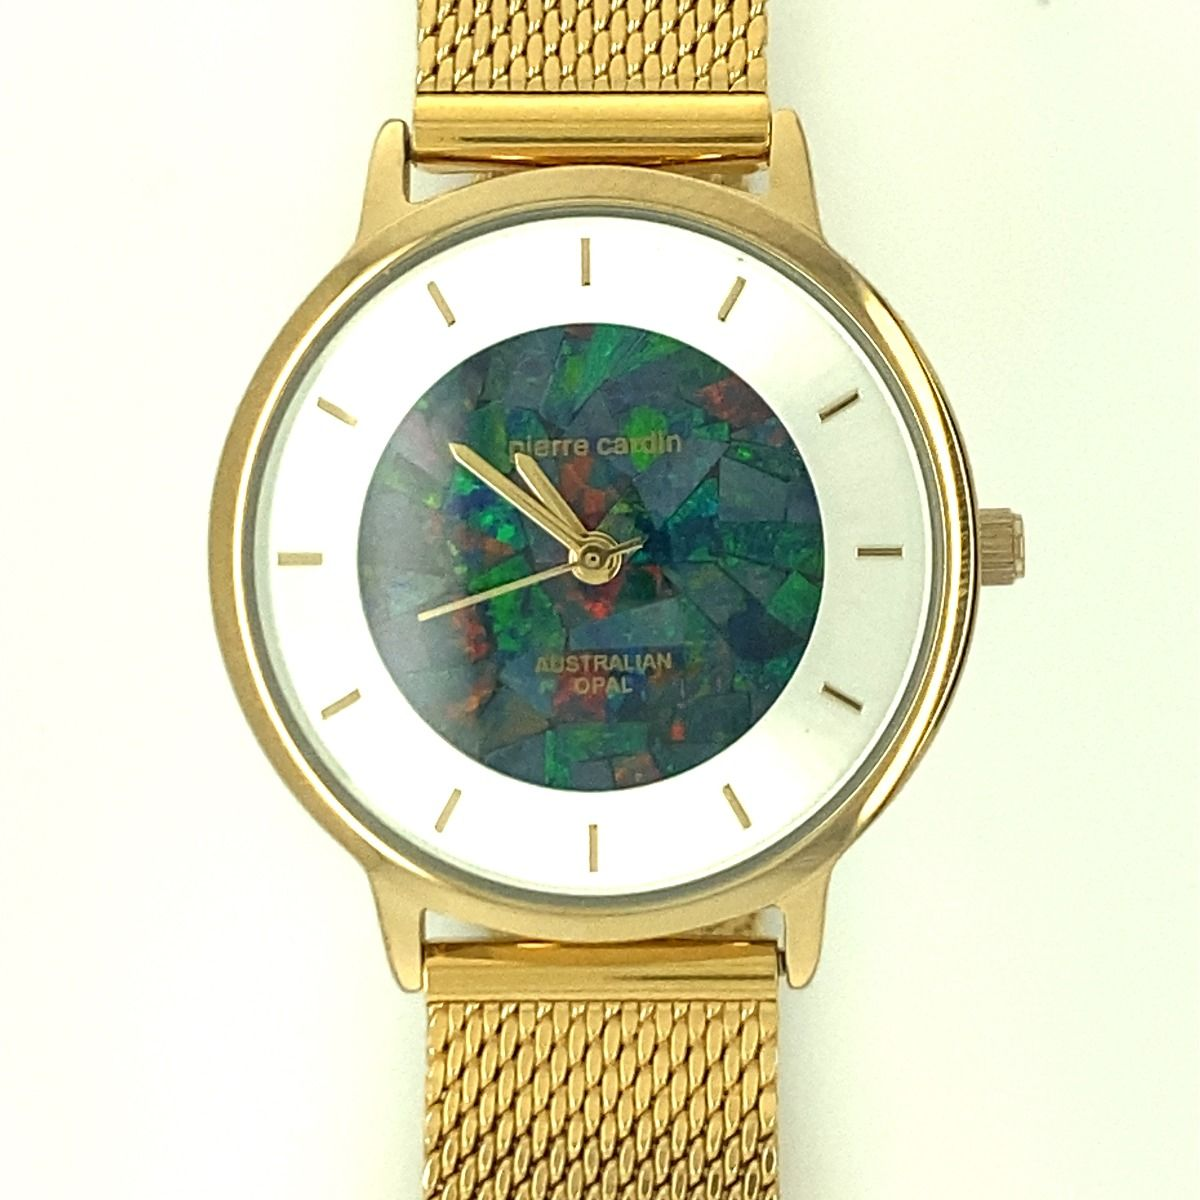 30mm Ladies Pierre Cardin Opal Face Inlay Watch with mesh band